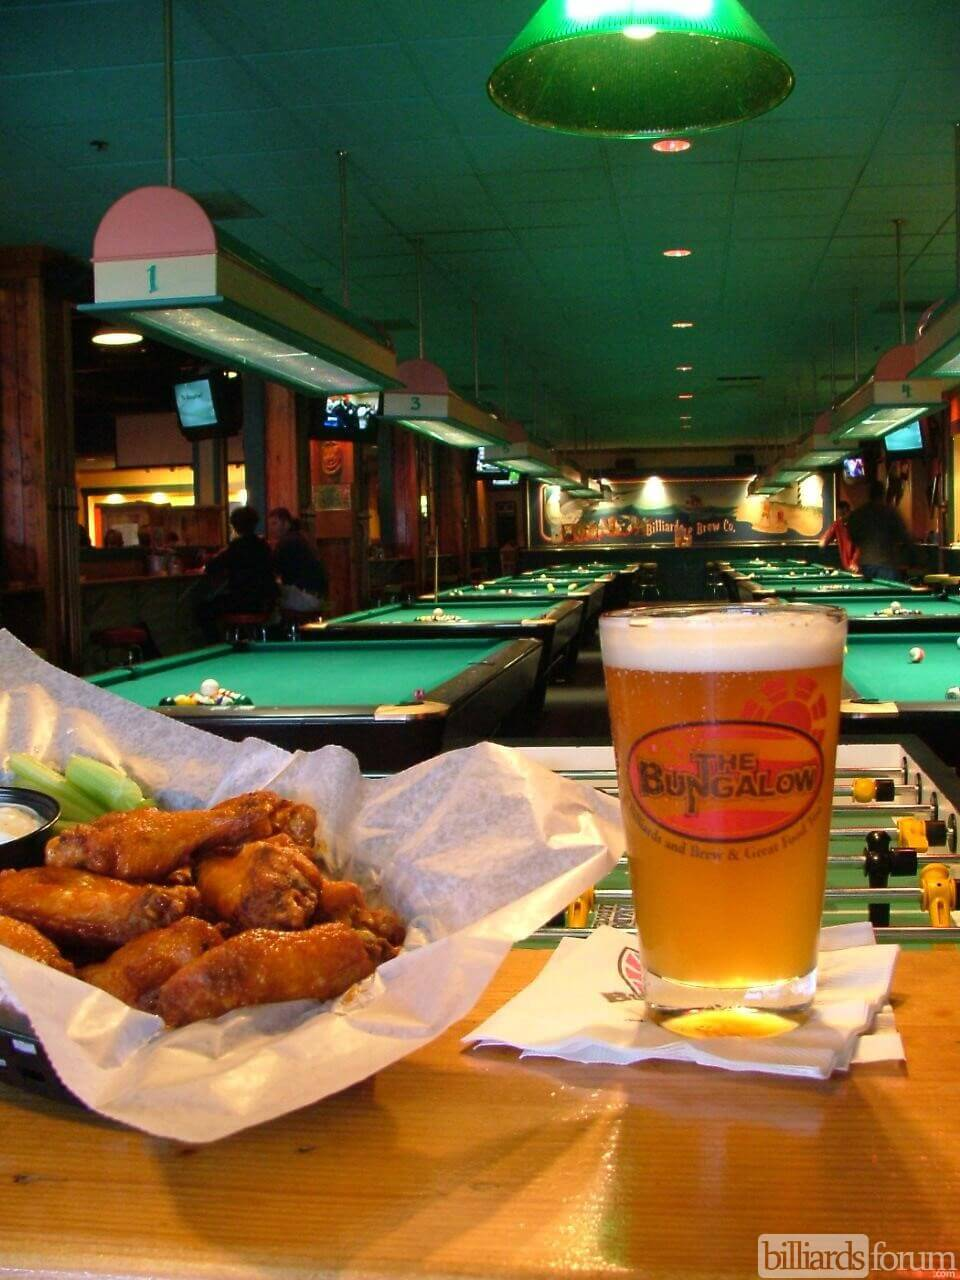 Marvelous Bungalow Billiards Part - 4: Food, Beer, And Billiards At The Bungalow Billiards U0026 Brew Chantilly, ...